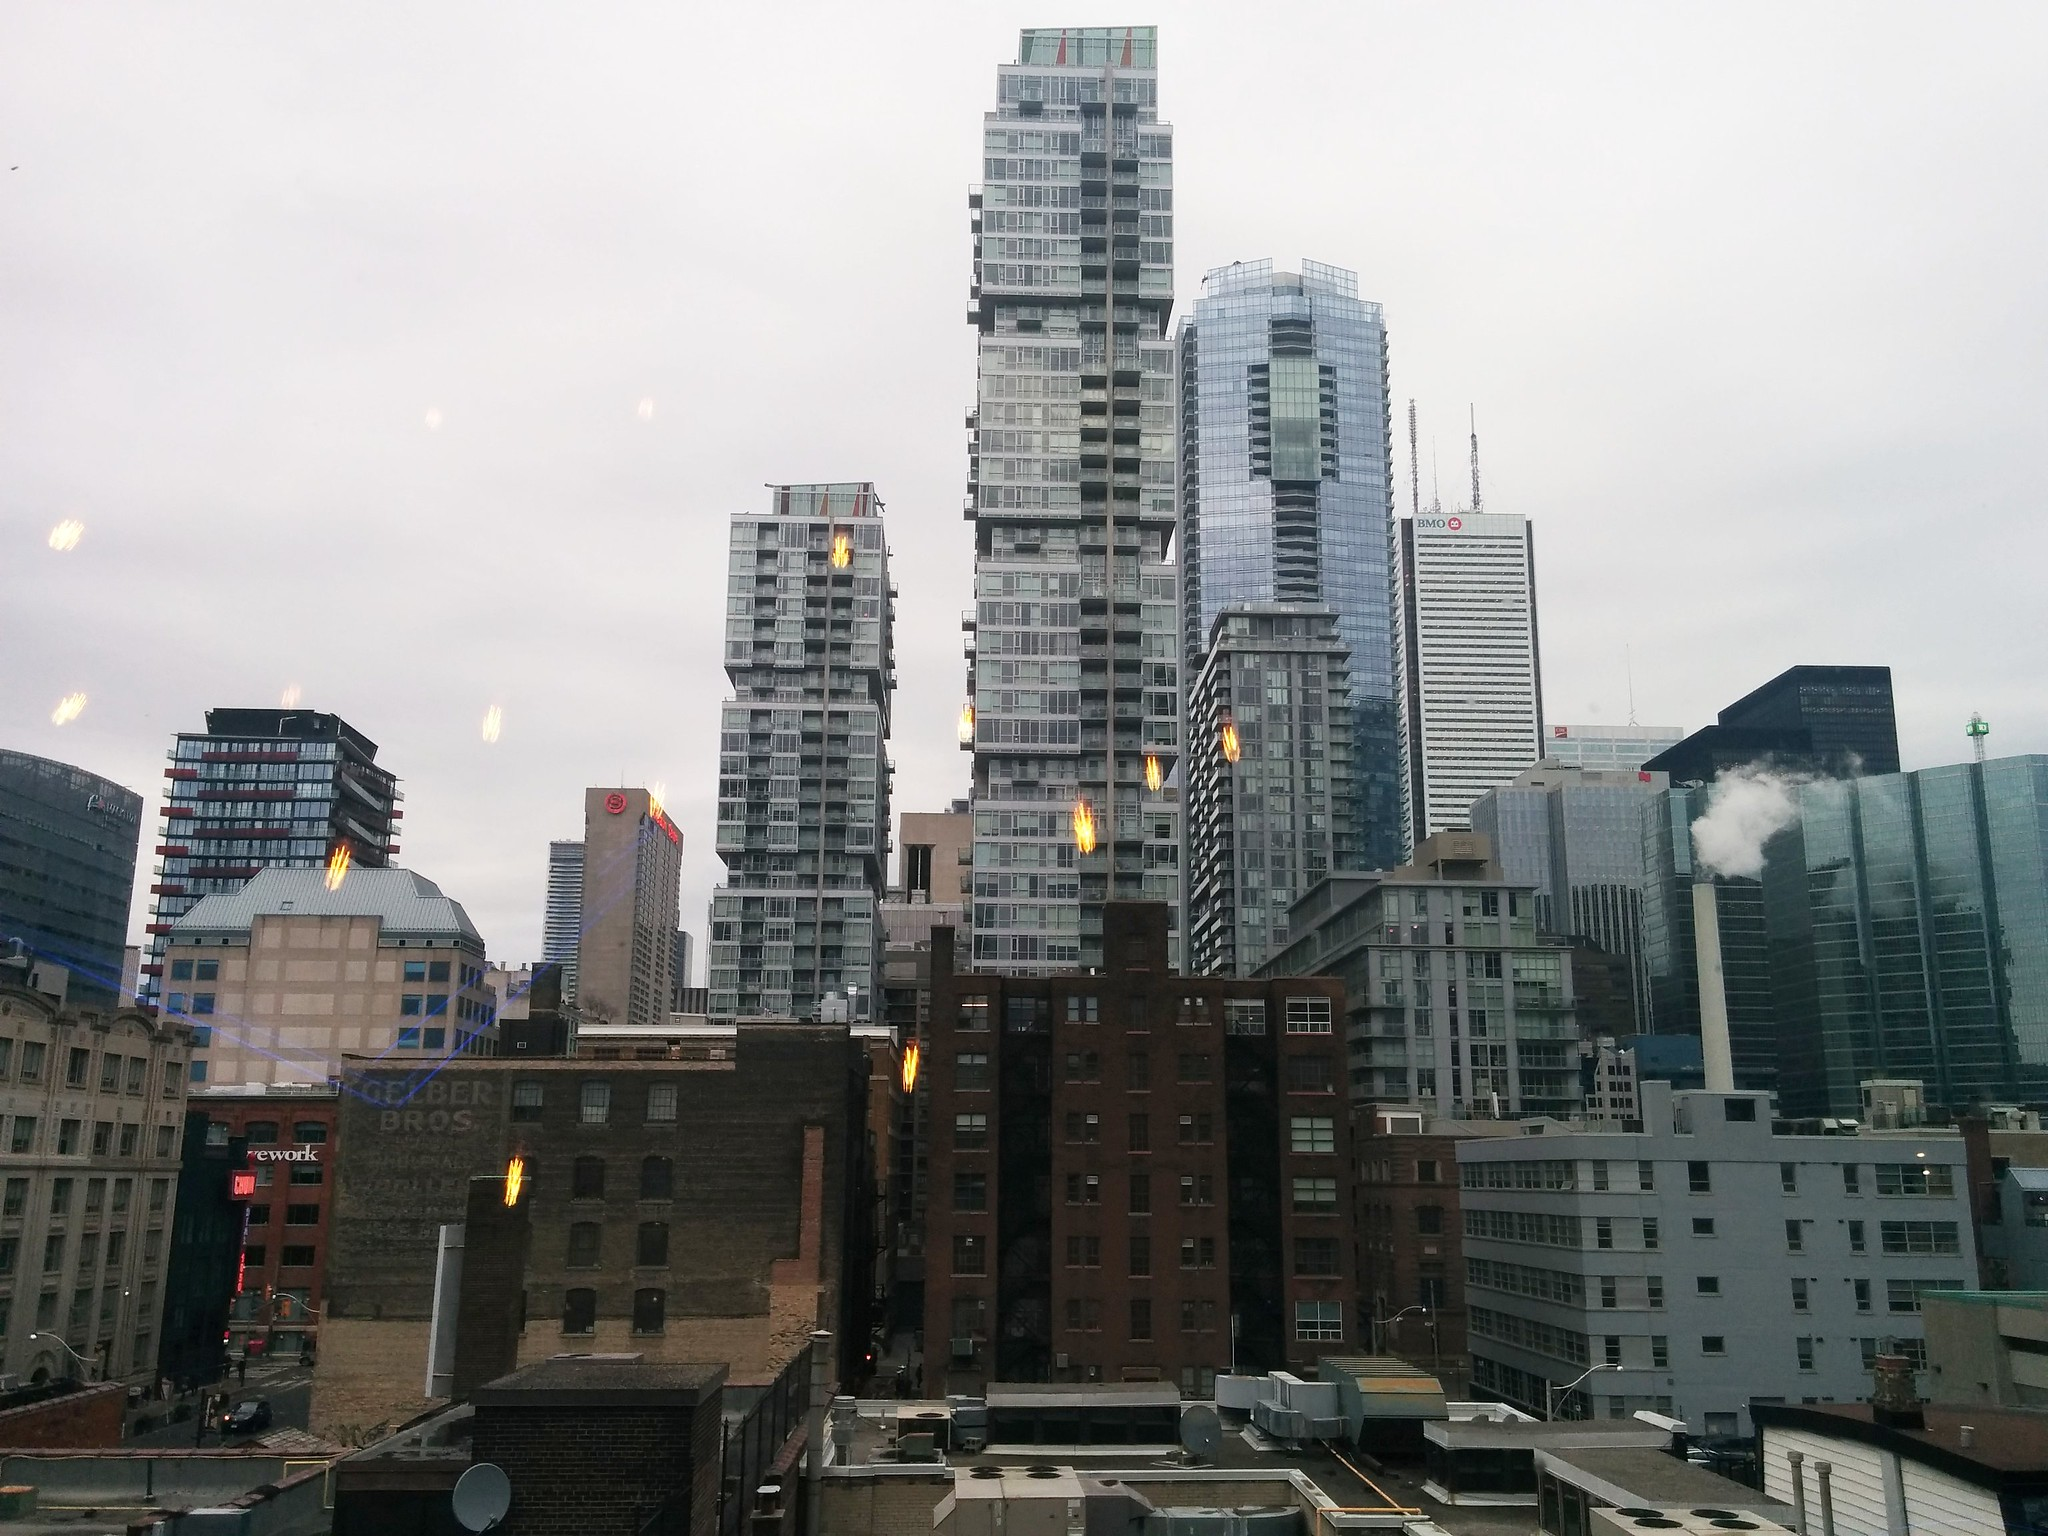 Looking east out the Scotiabank window #toronto #entertainmentdistrict #financialdistrict #scotiabanktheatre #skyline